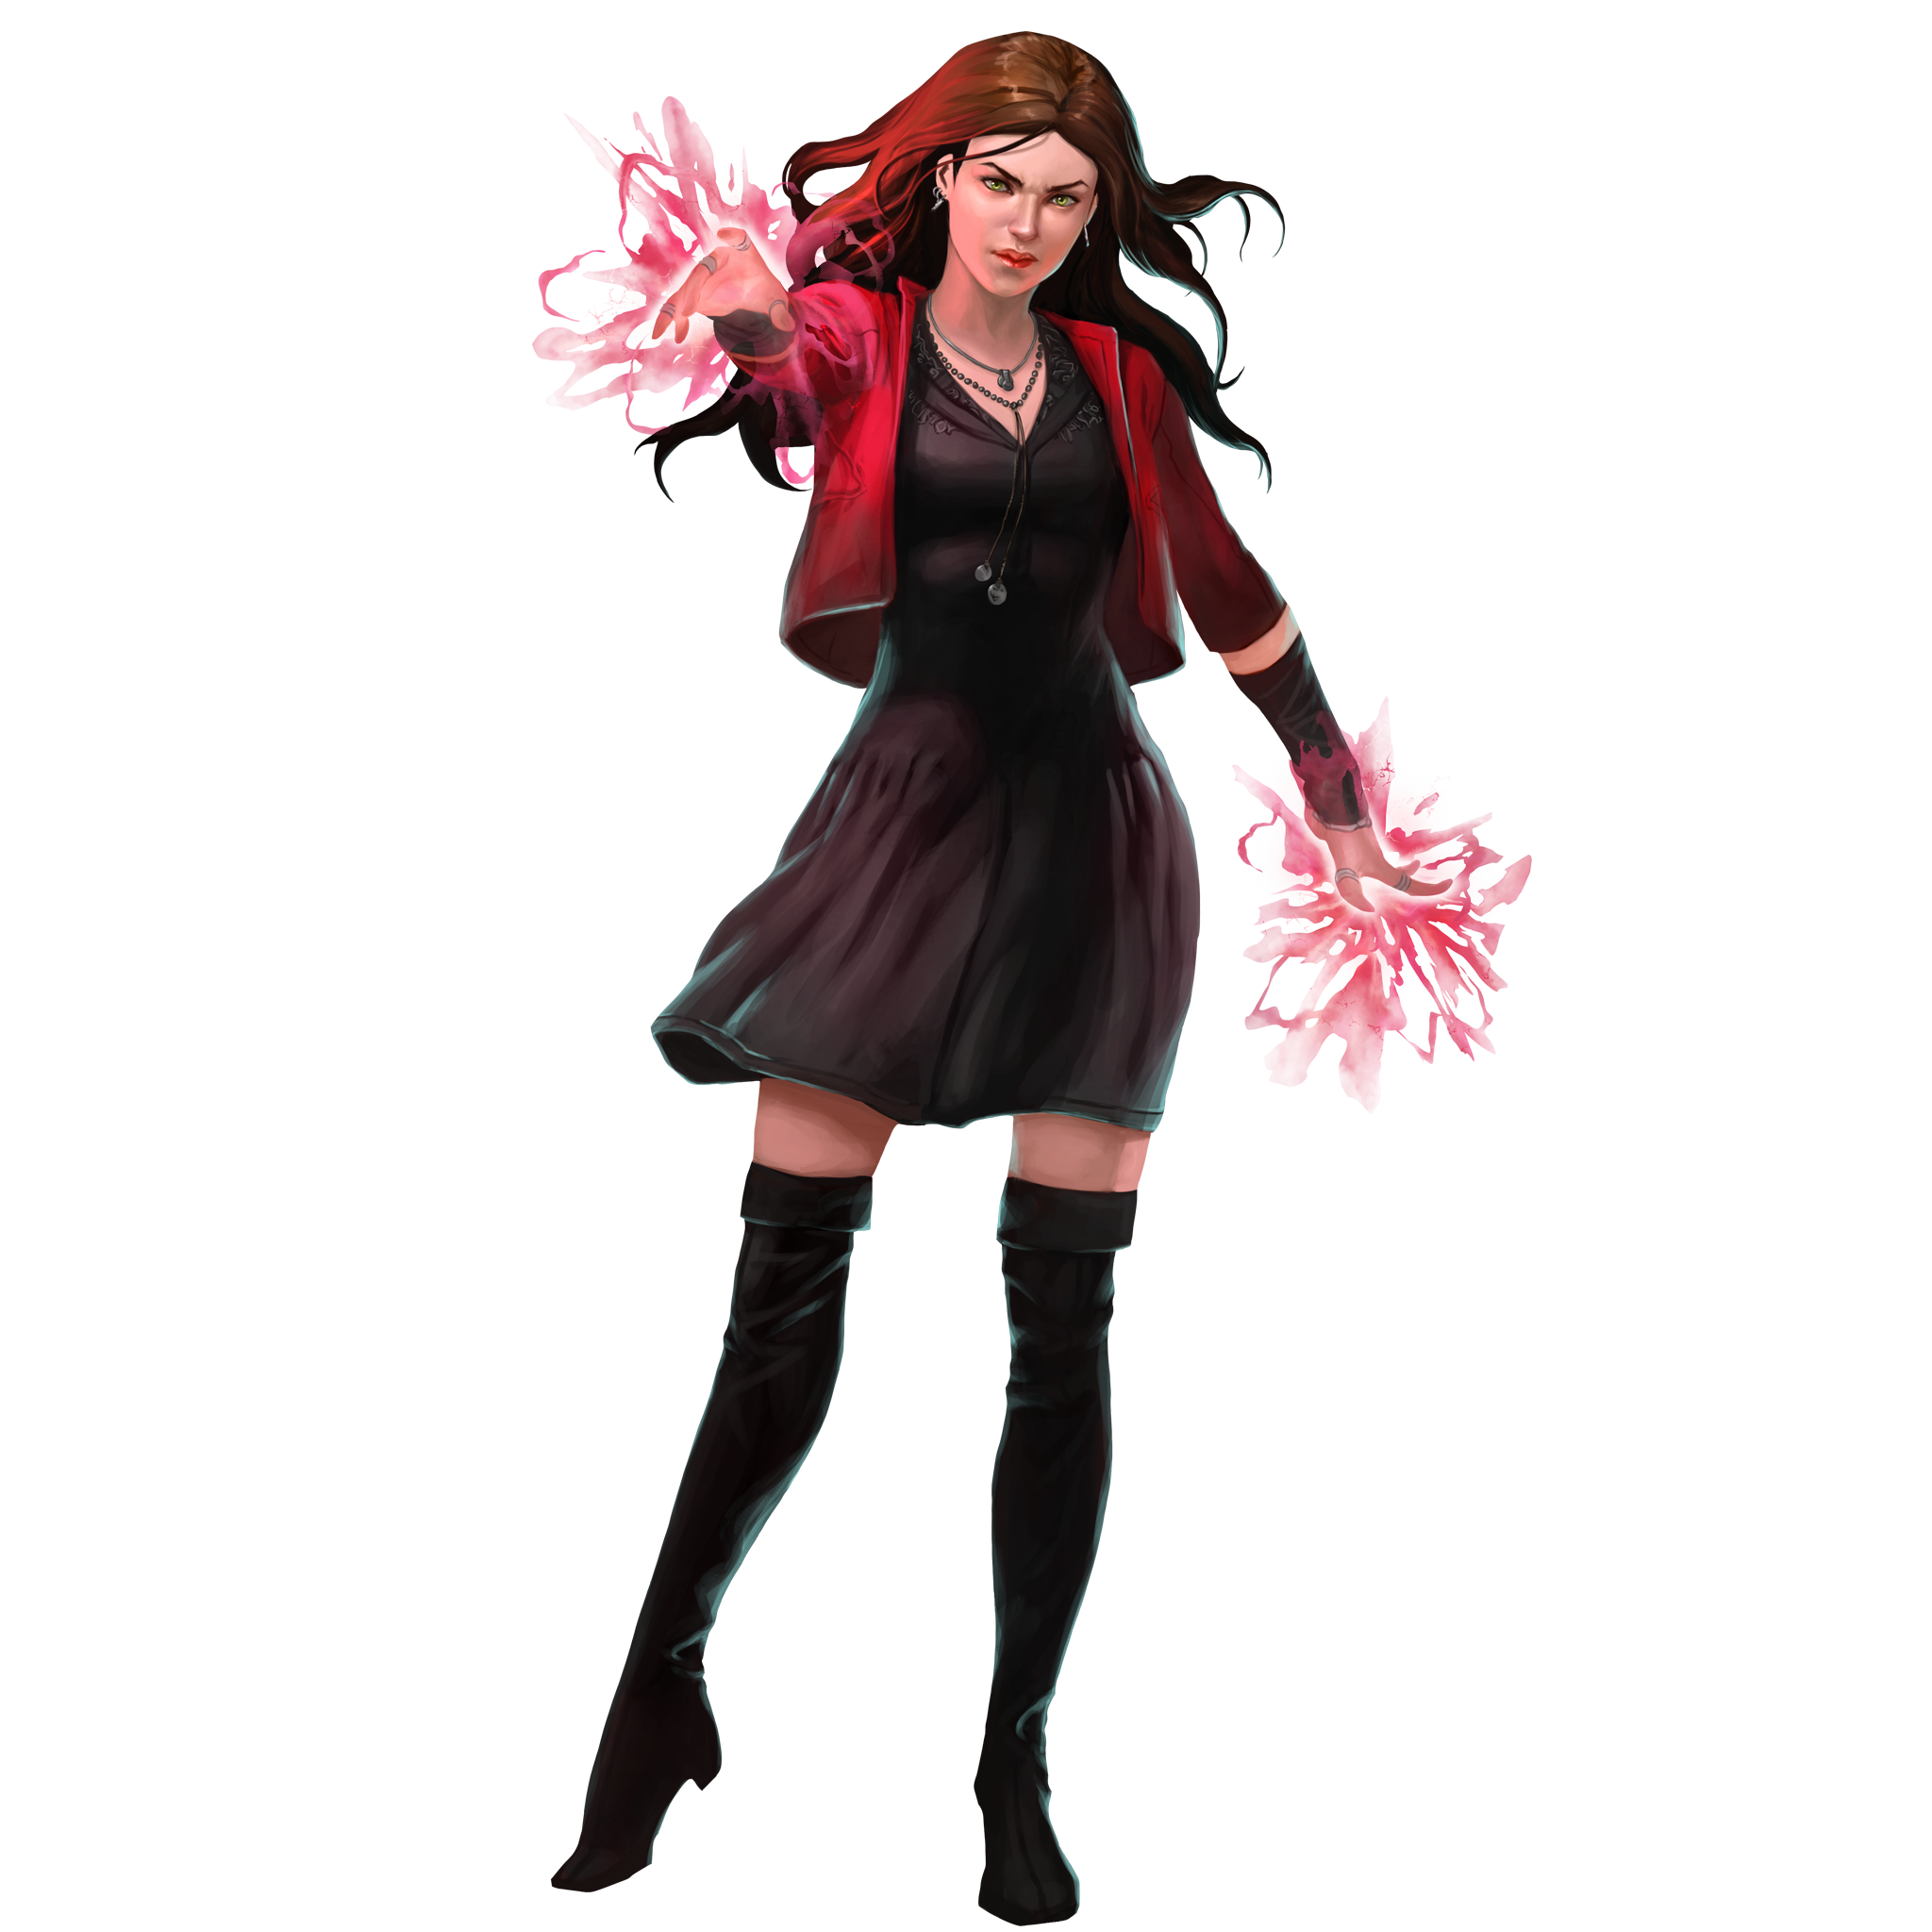 Download PNG image - Scarlet Witch Png Clipart - Scarletwitch HD PNG